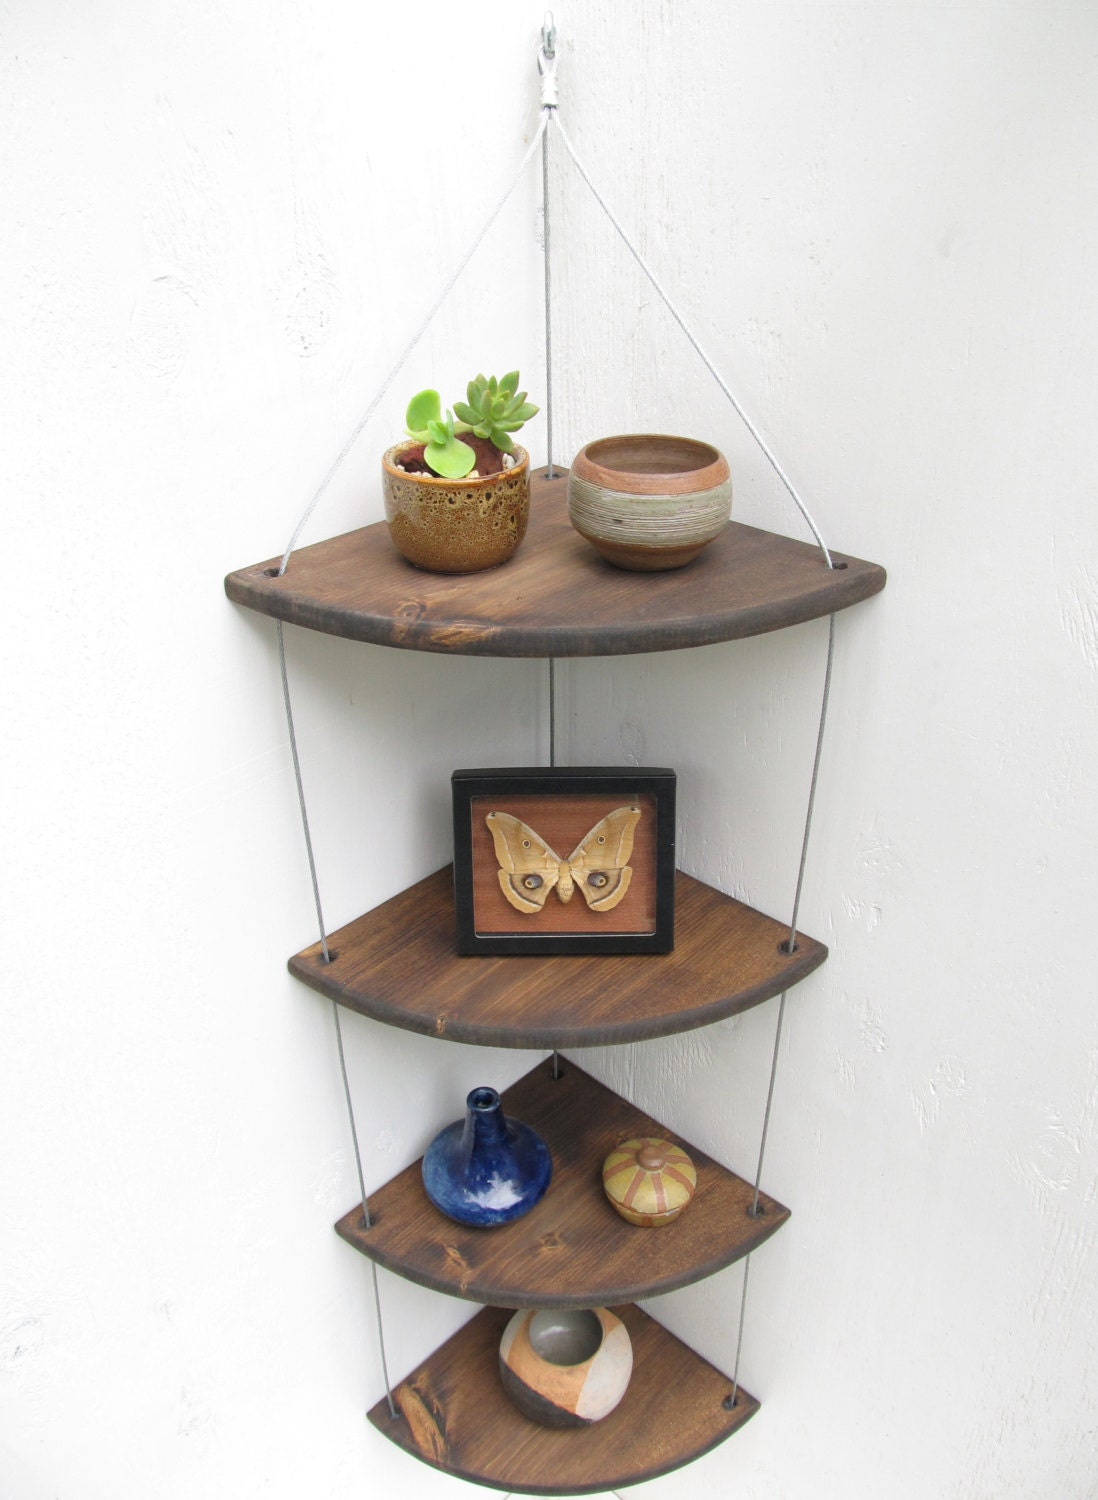 wall shelves corner shelvesindustrial shelves modern decor